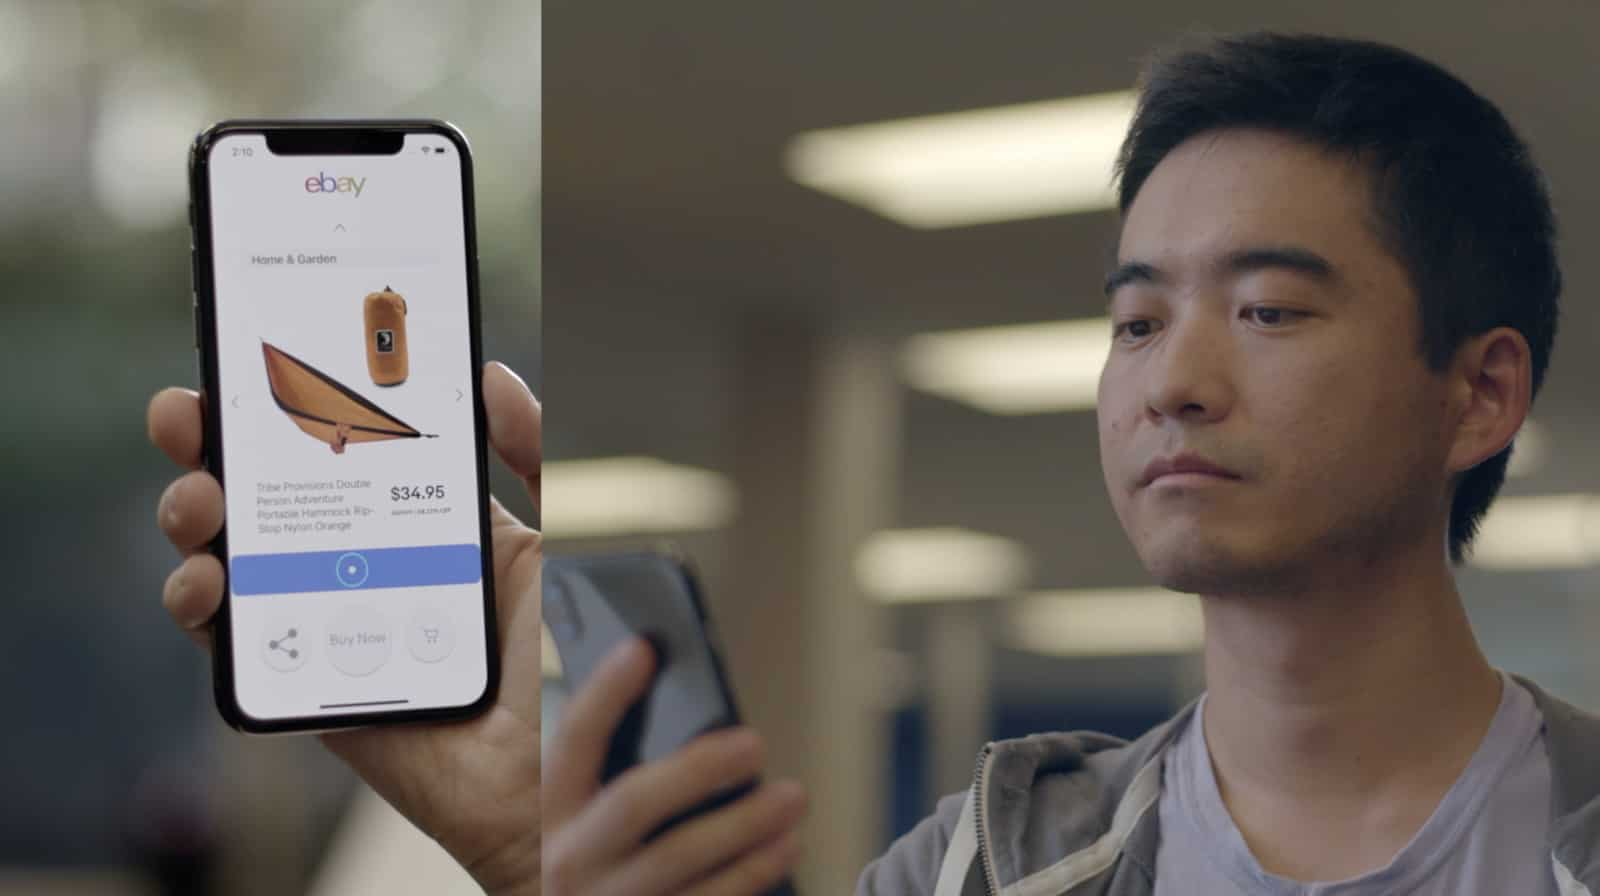 HeadGaze uses the iPhone X 3D camera to move an on-screen cursor with subtle head motions.